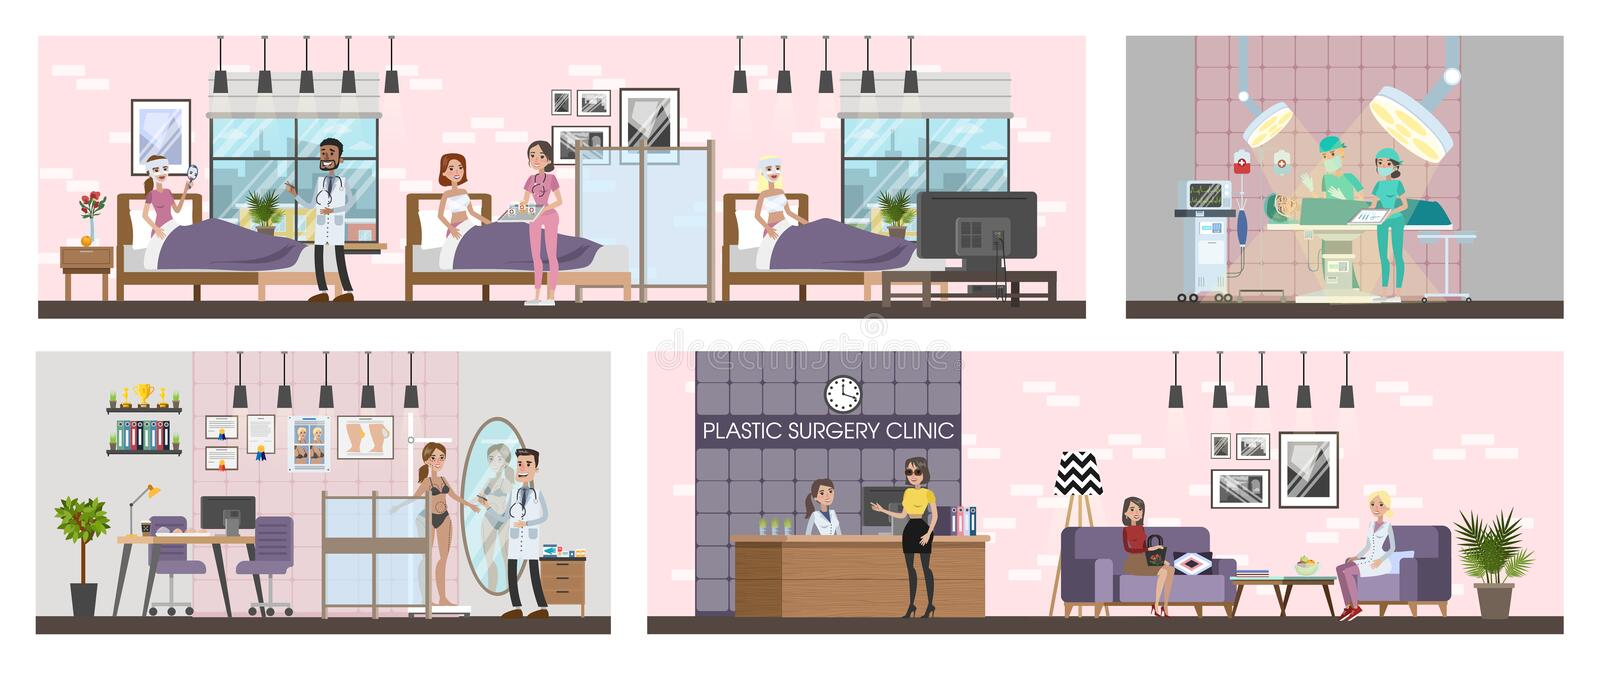 Plastic surgery clinic interior with surgery, rooms and reception. Woman after surgeon in the bed. Vector flat illustration royalty free illustration